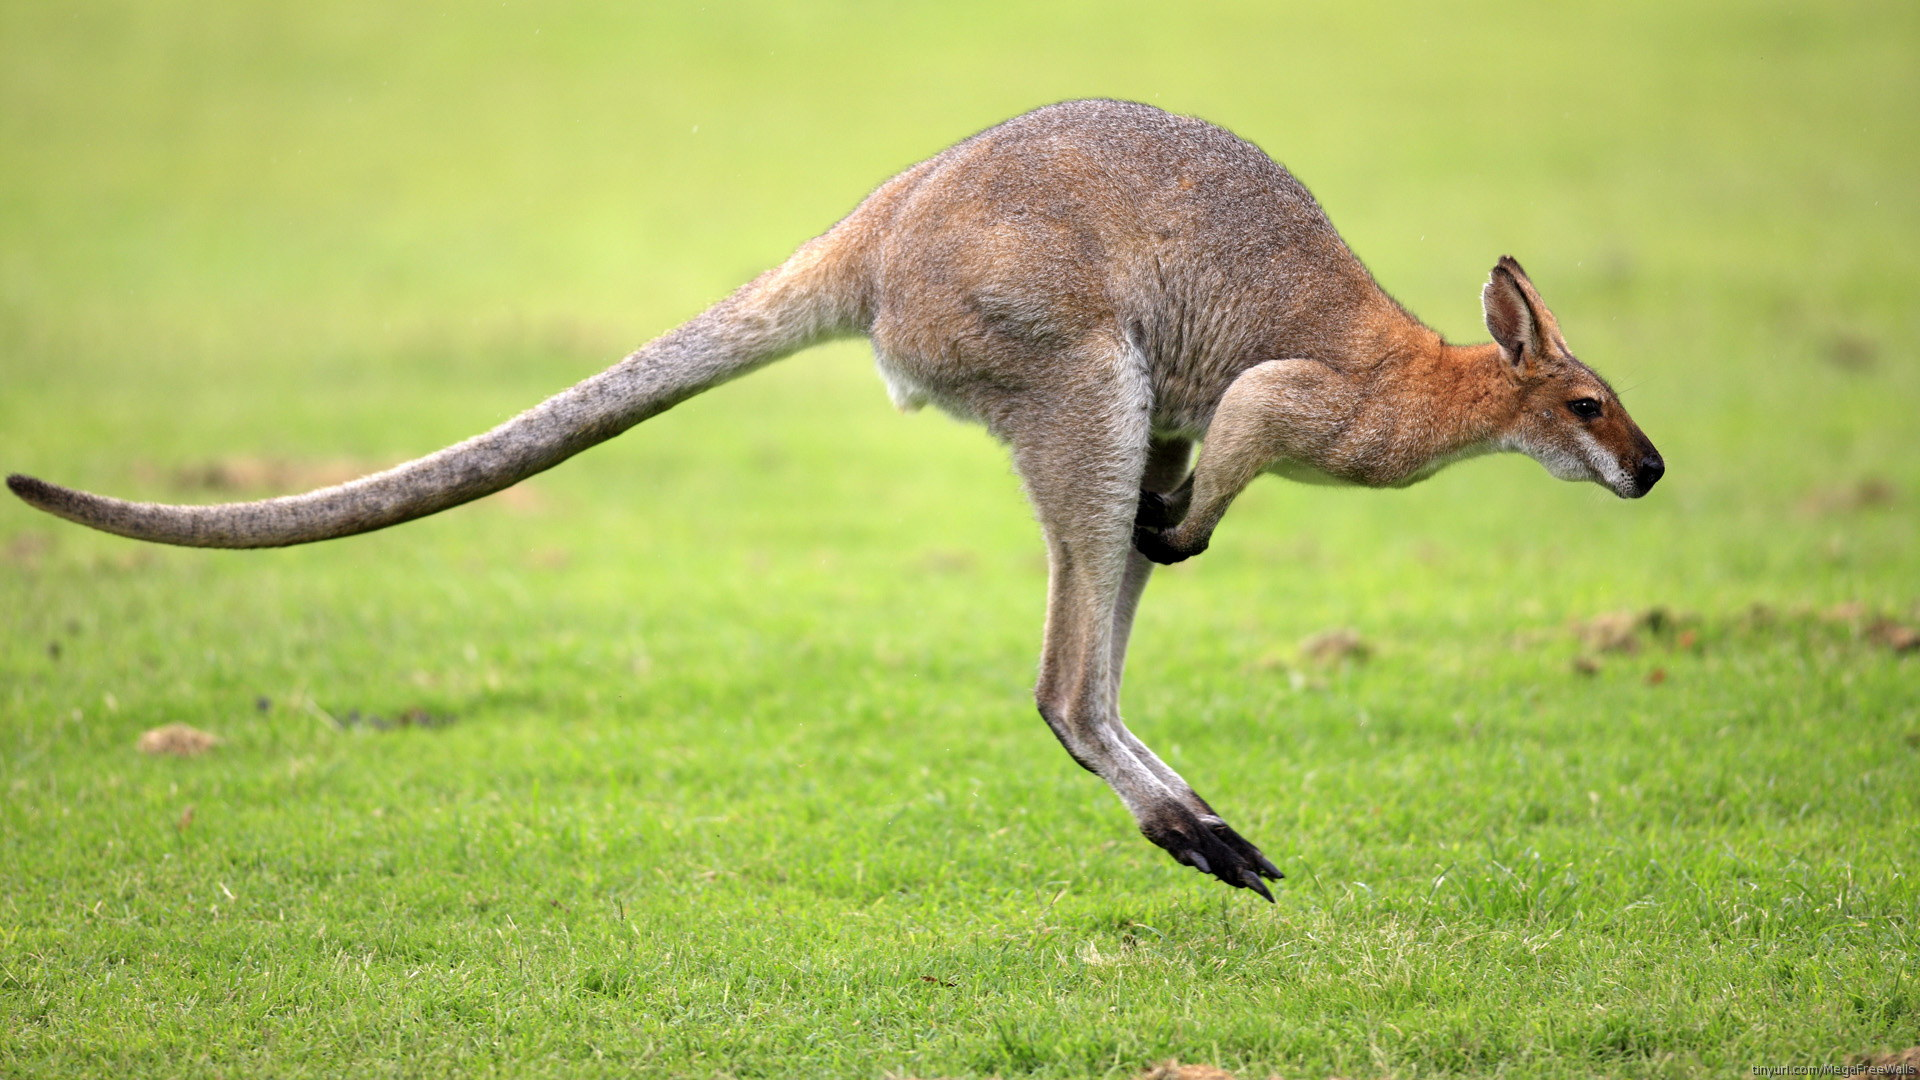 pictures of baby kangaroos in pouch